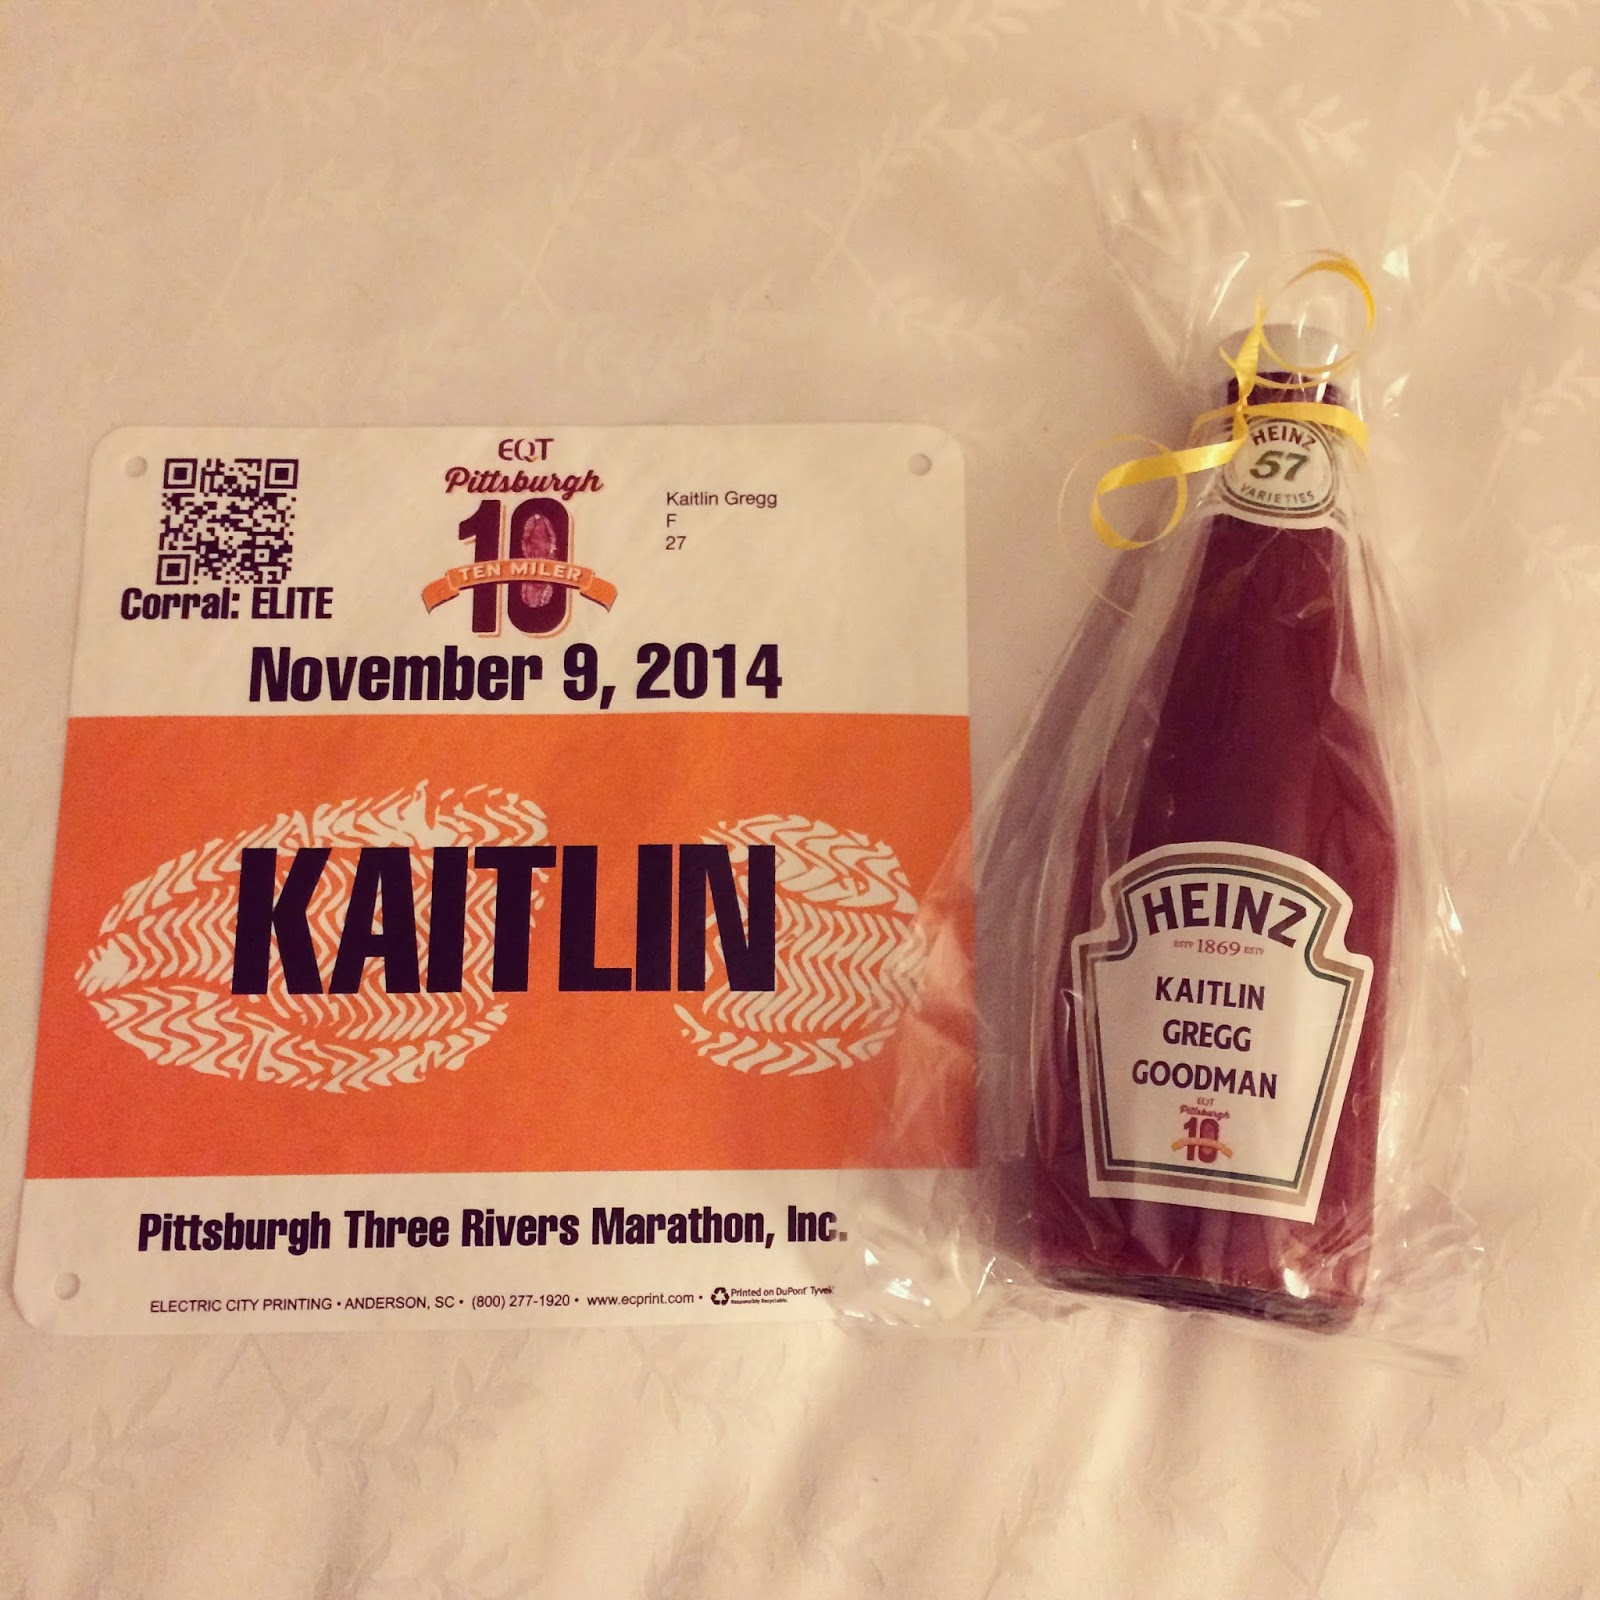 Yes, this is a personalized ketchup bottle - awesome race gift from the PGH 10 Miler team!